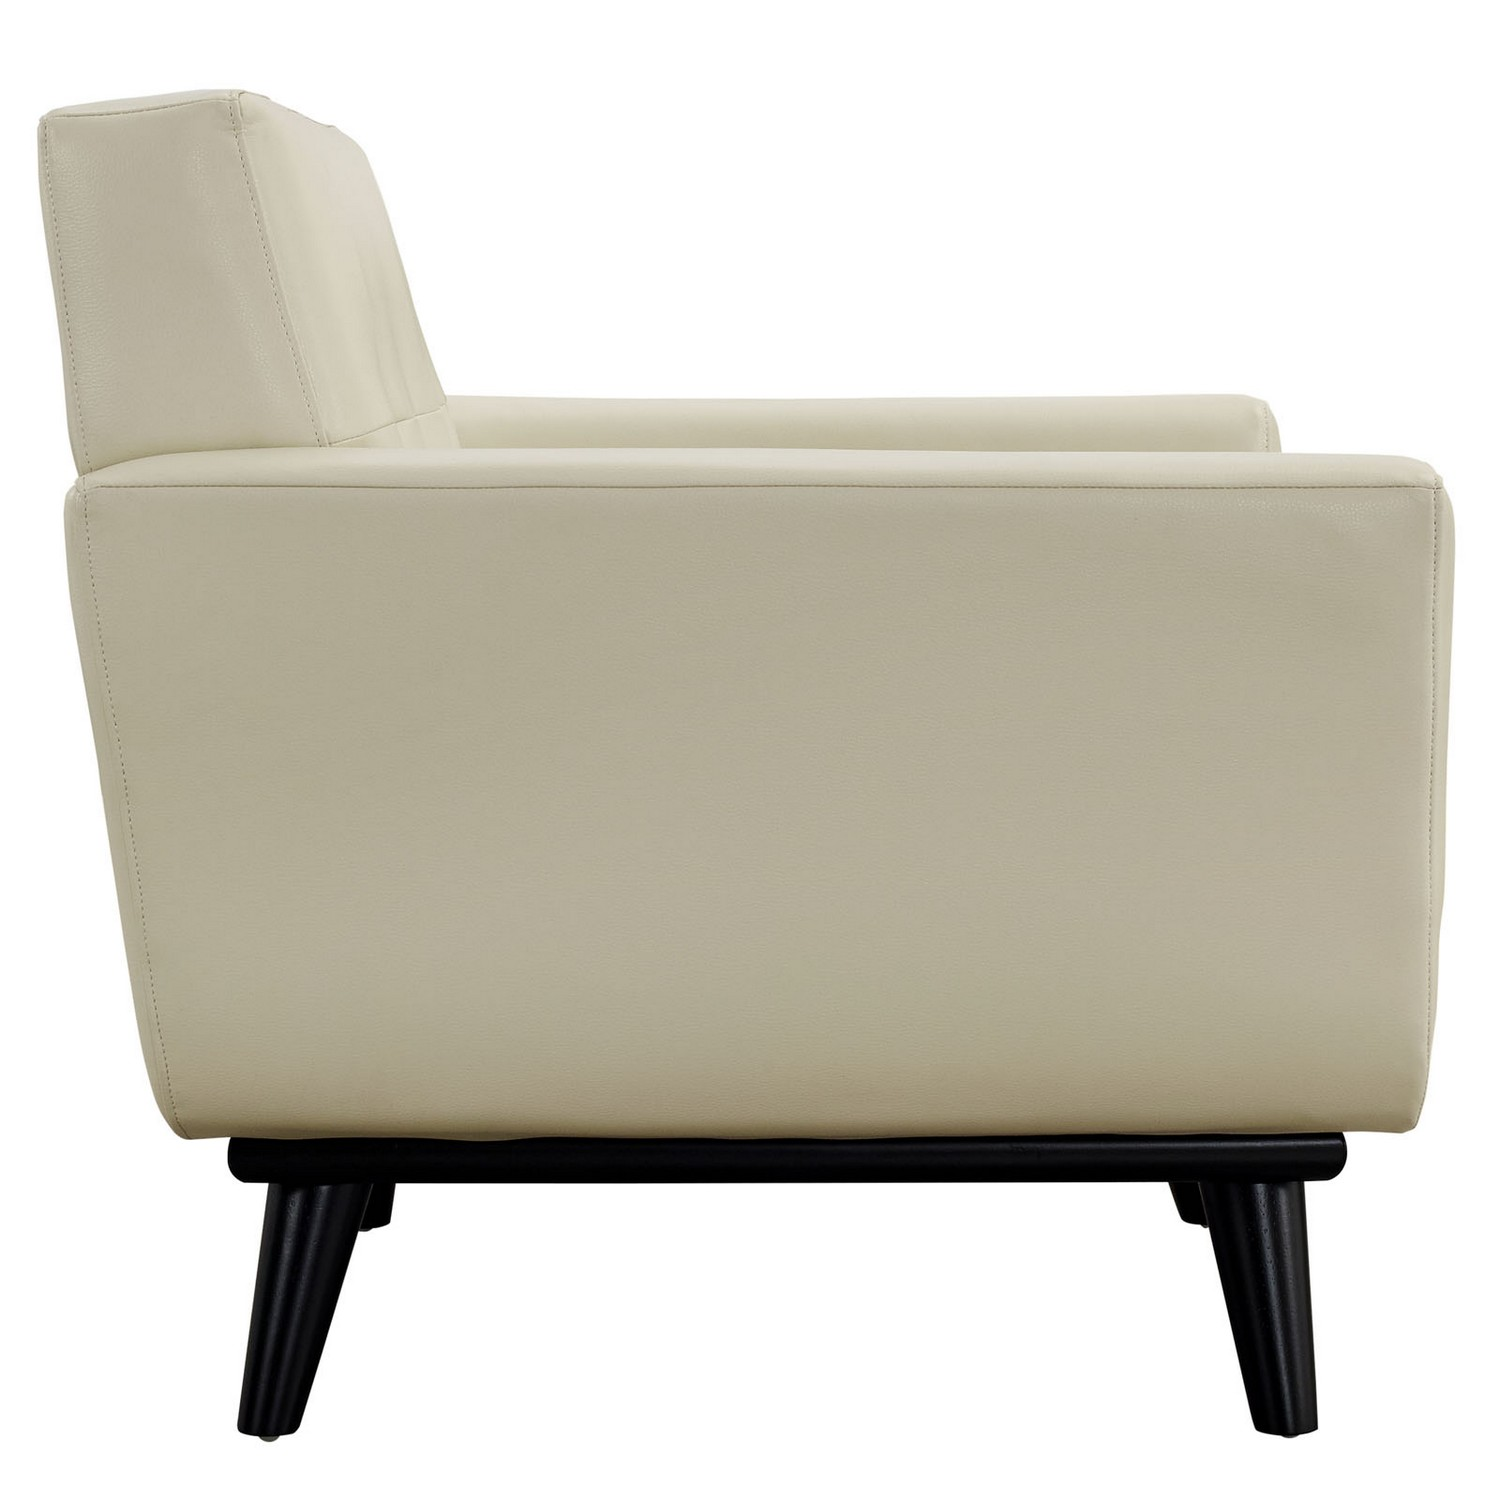 Modway Engage 2 Piece Leather Living Room Set - Beige